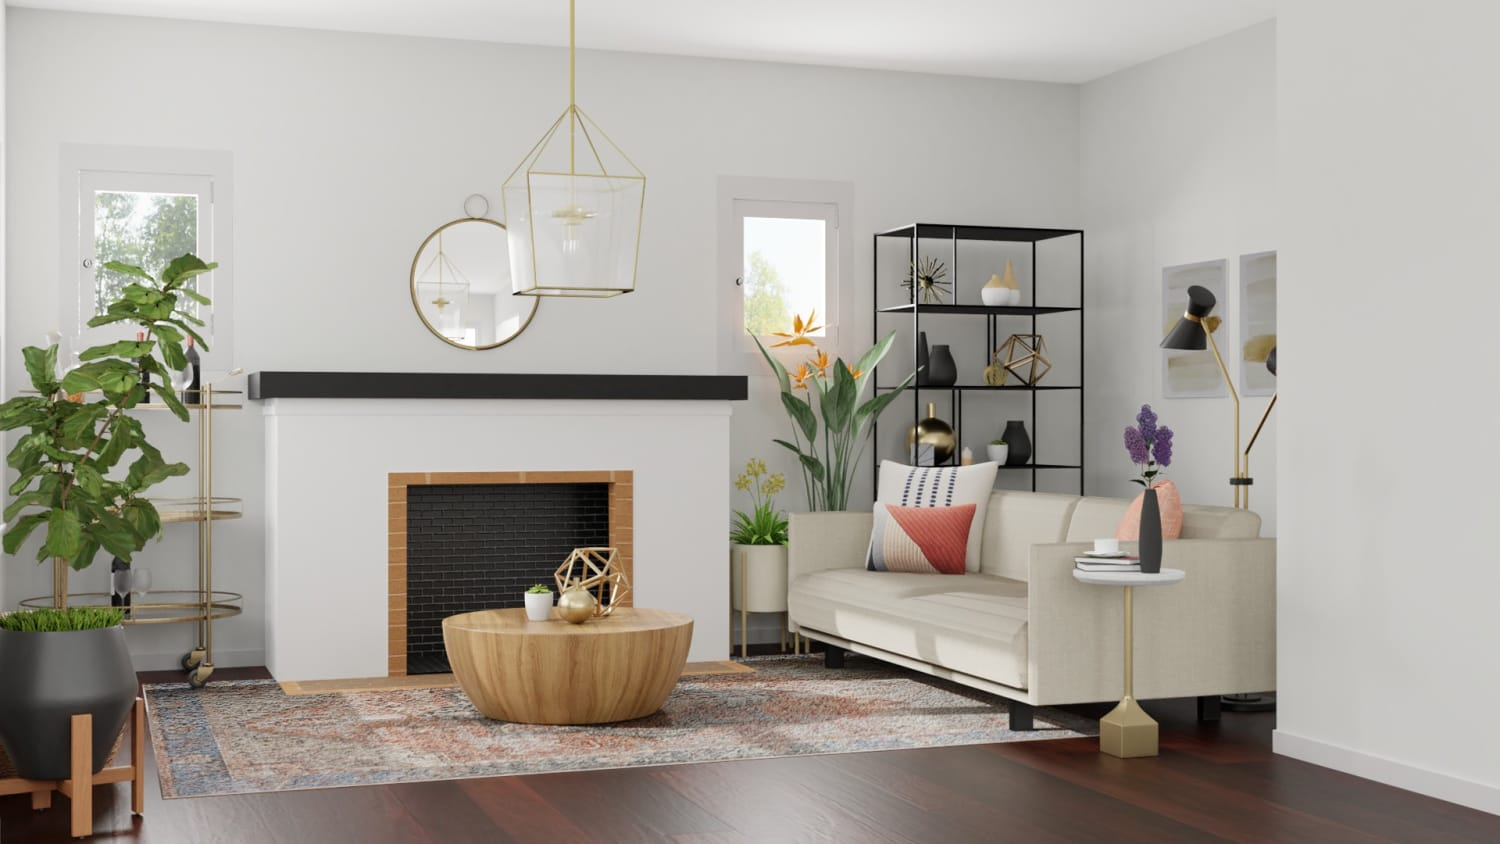 Combining Brass + Black Metals: Modern Glam Living Room Design By Spacejoy